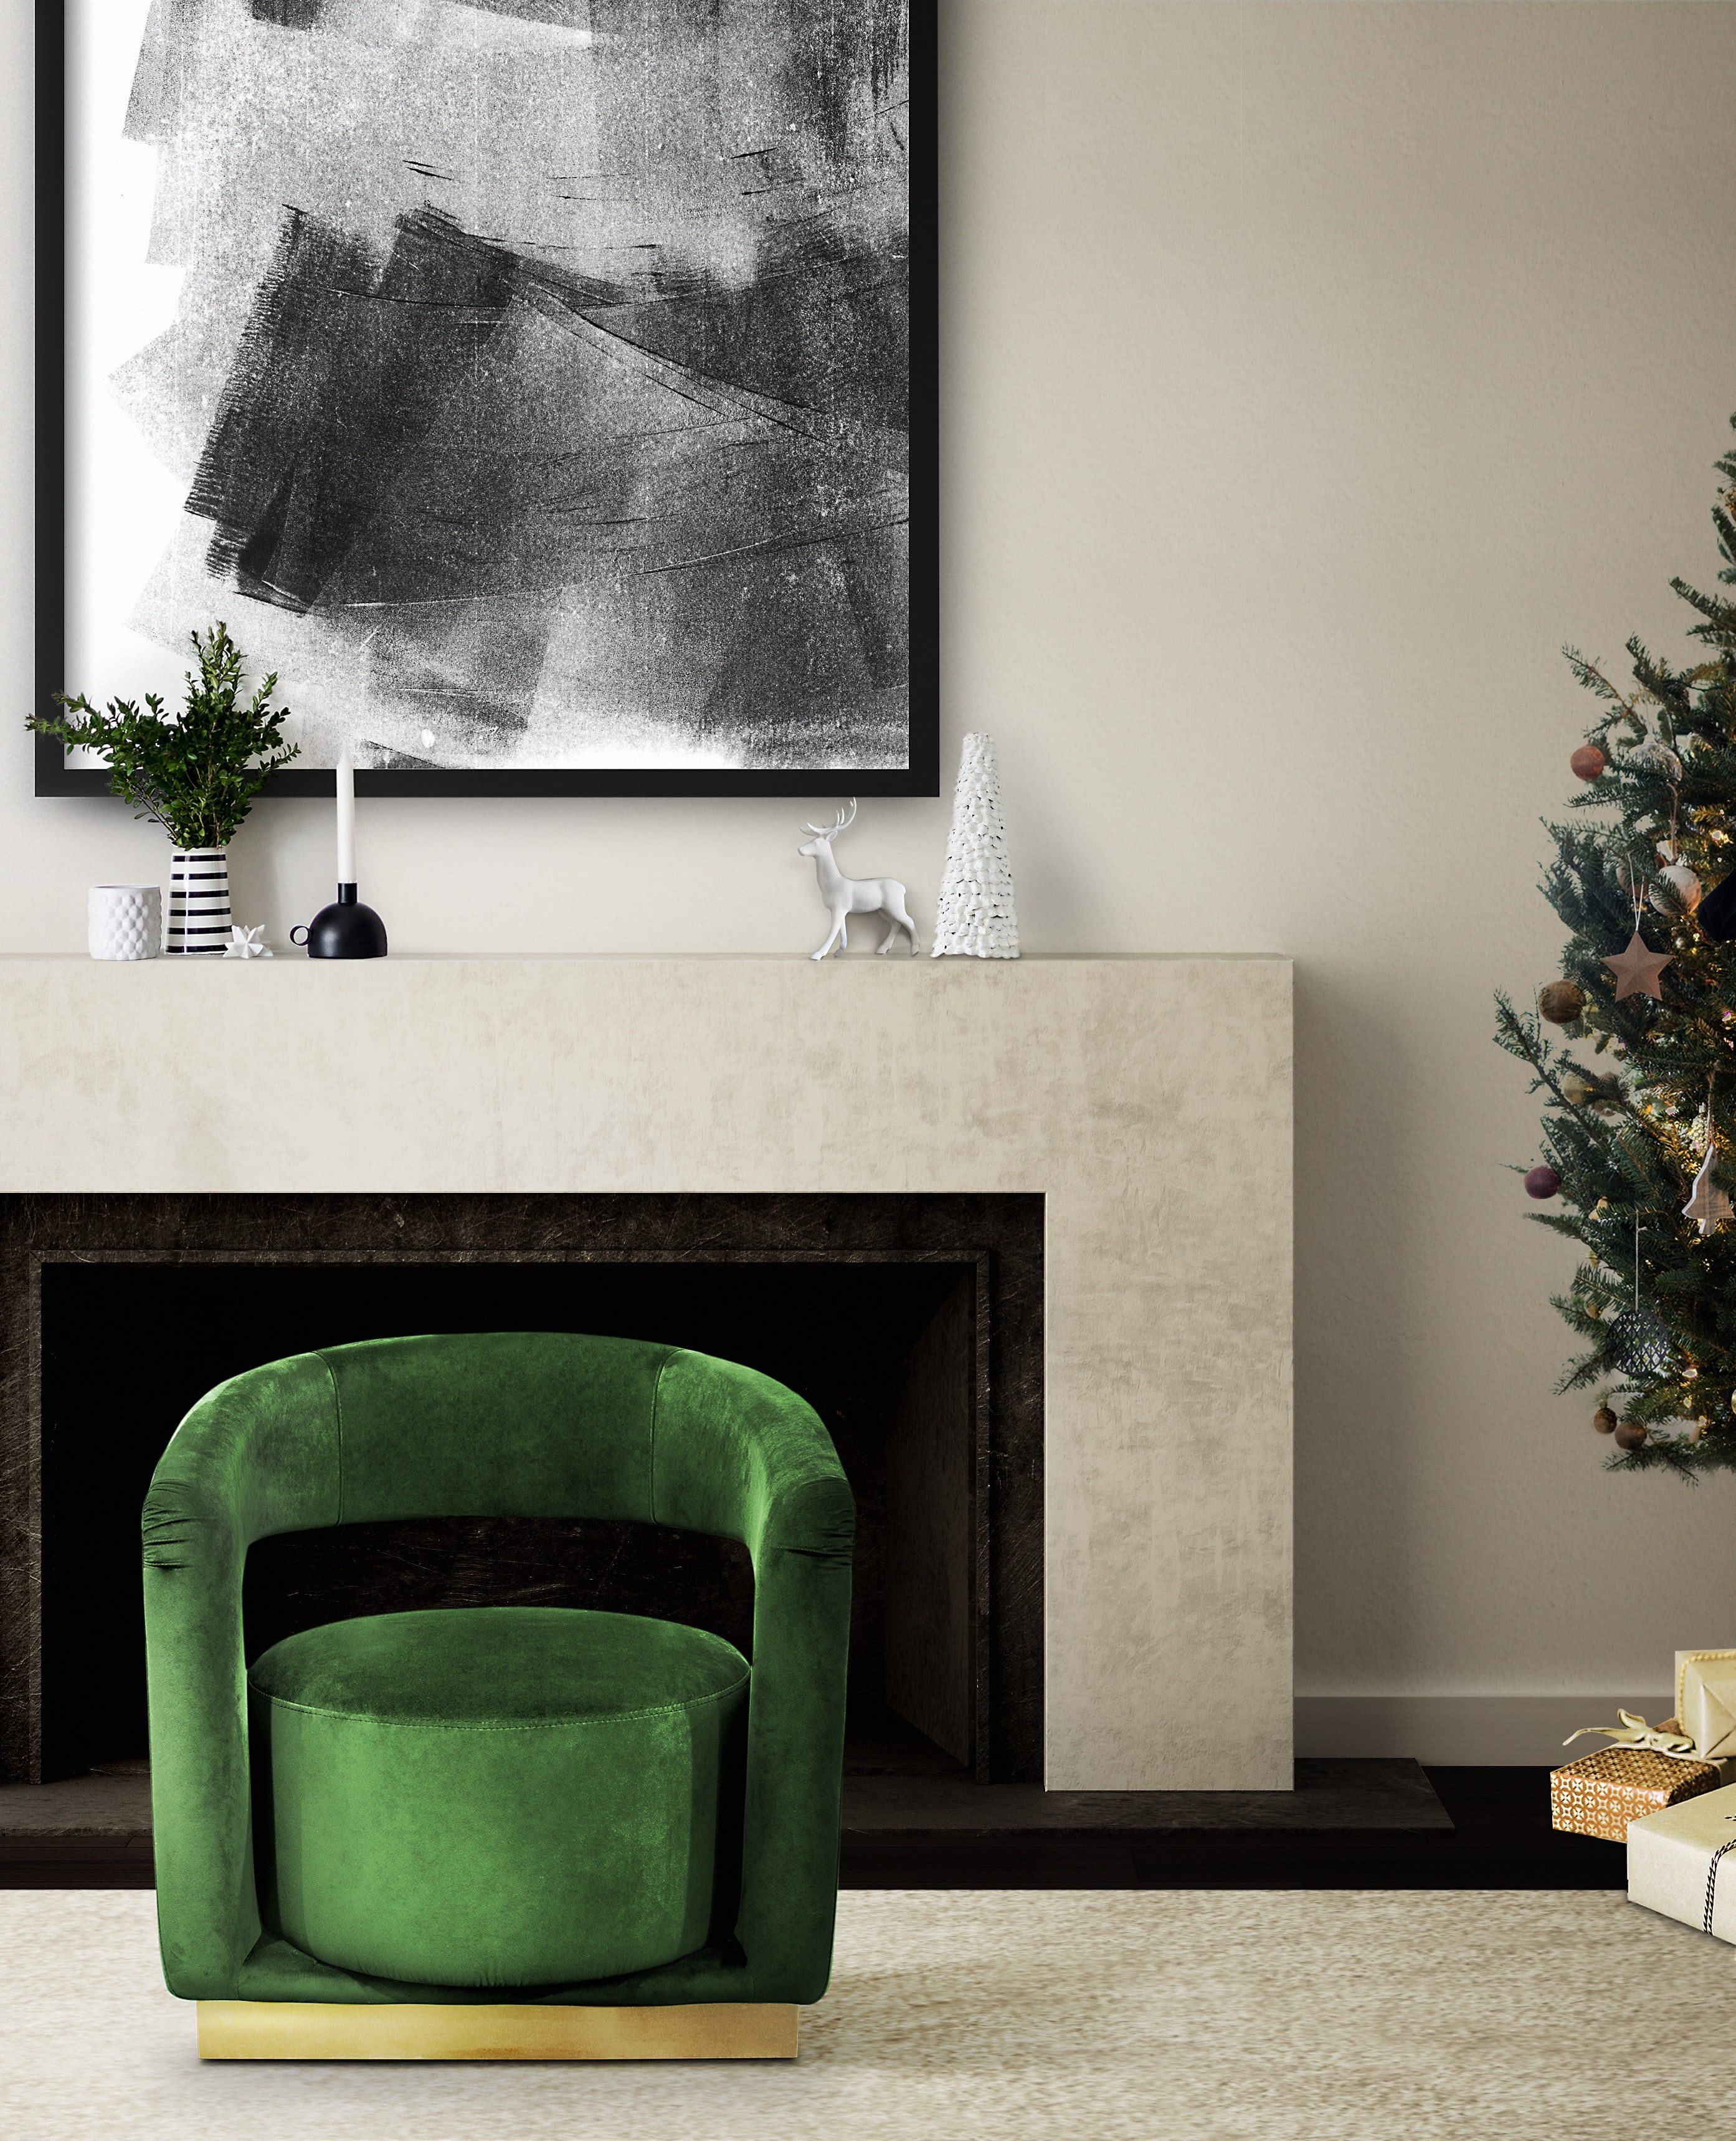 This is why essential home is the best mid century luxury furniture brand